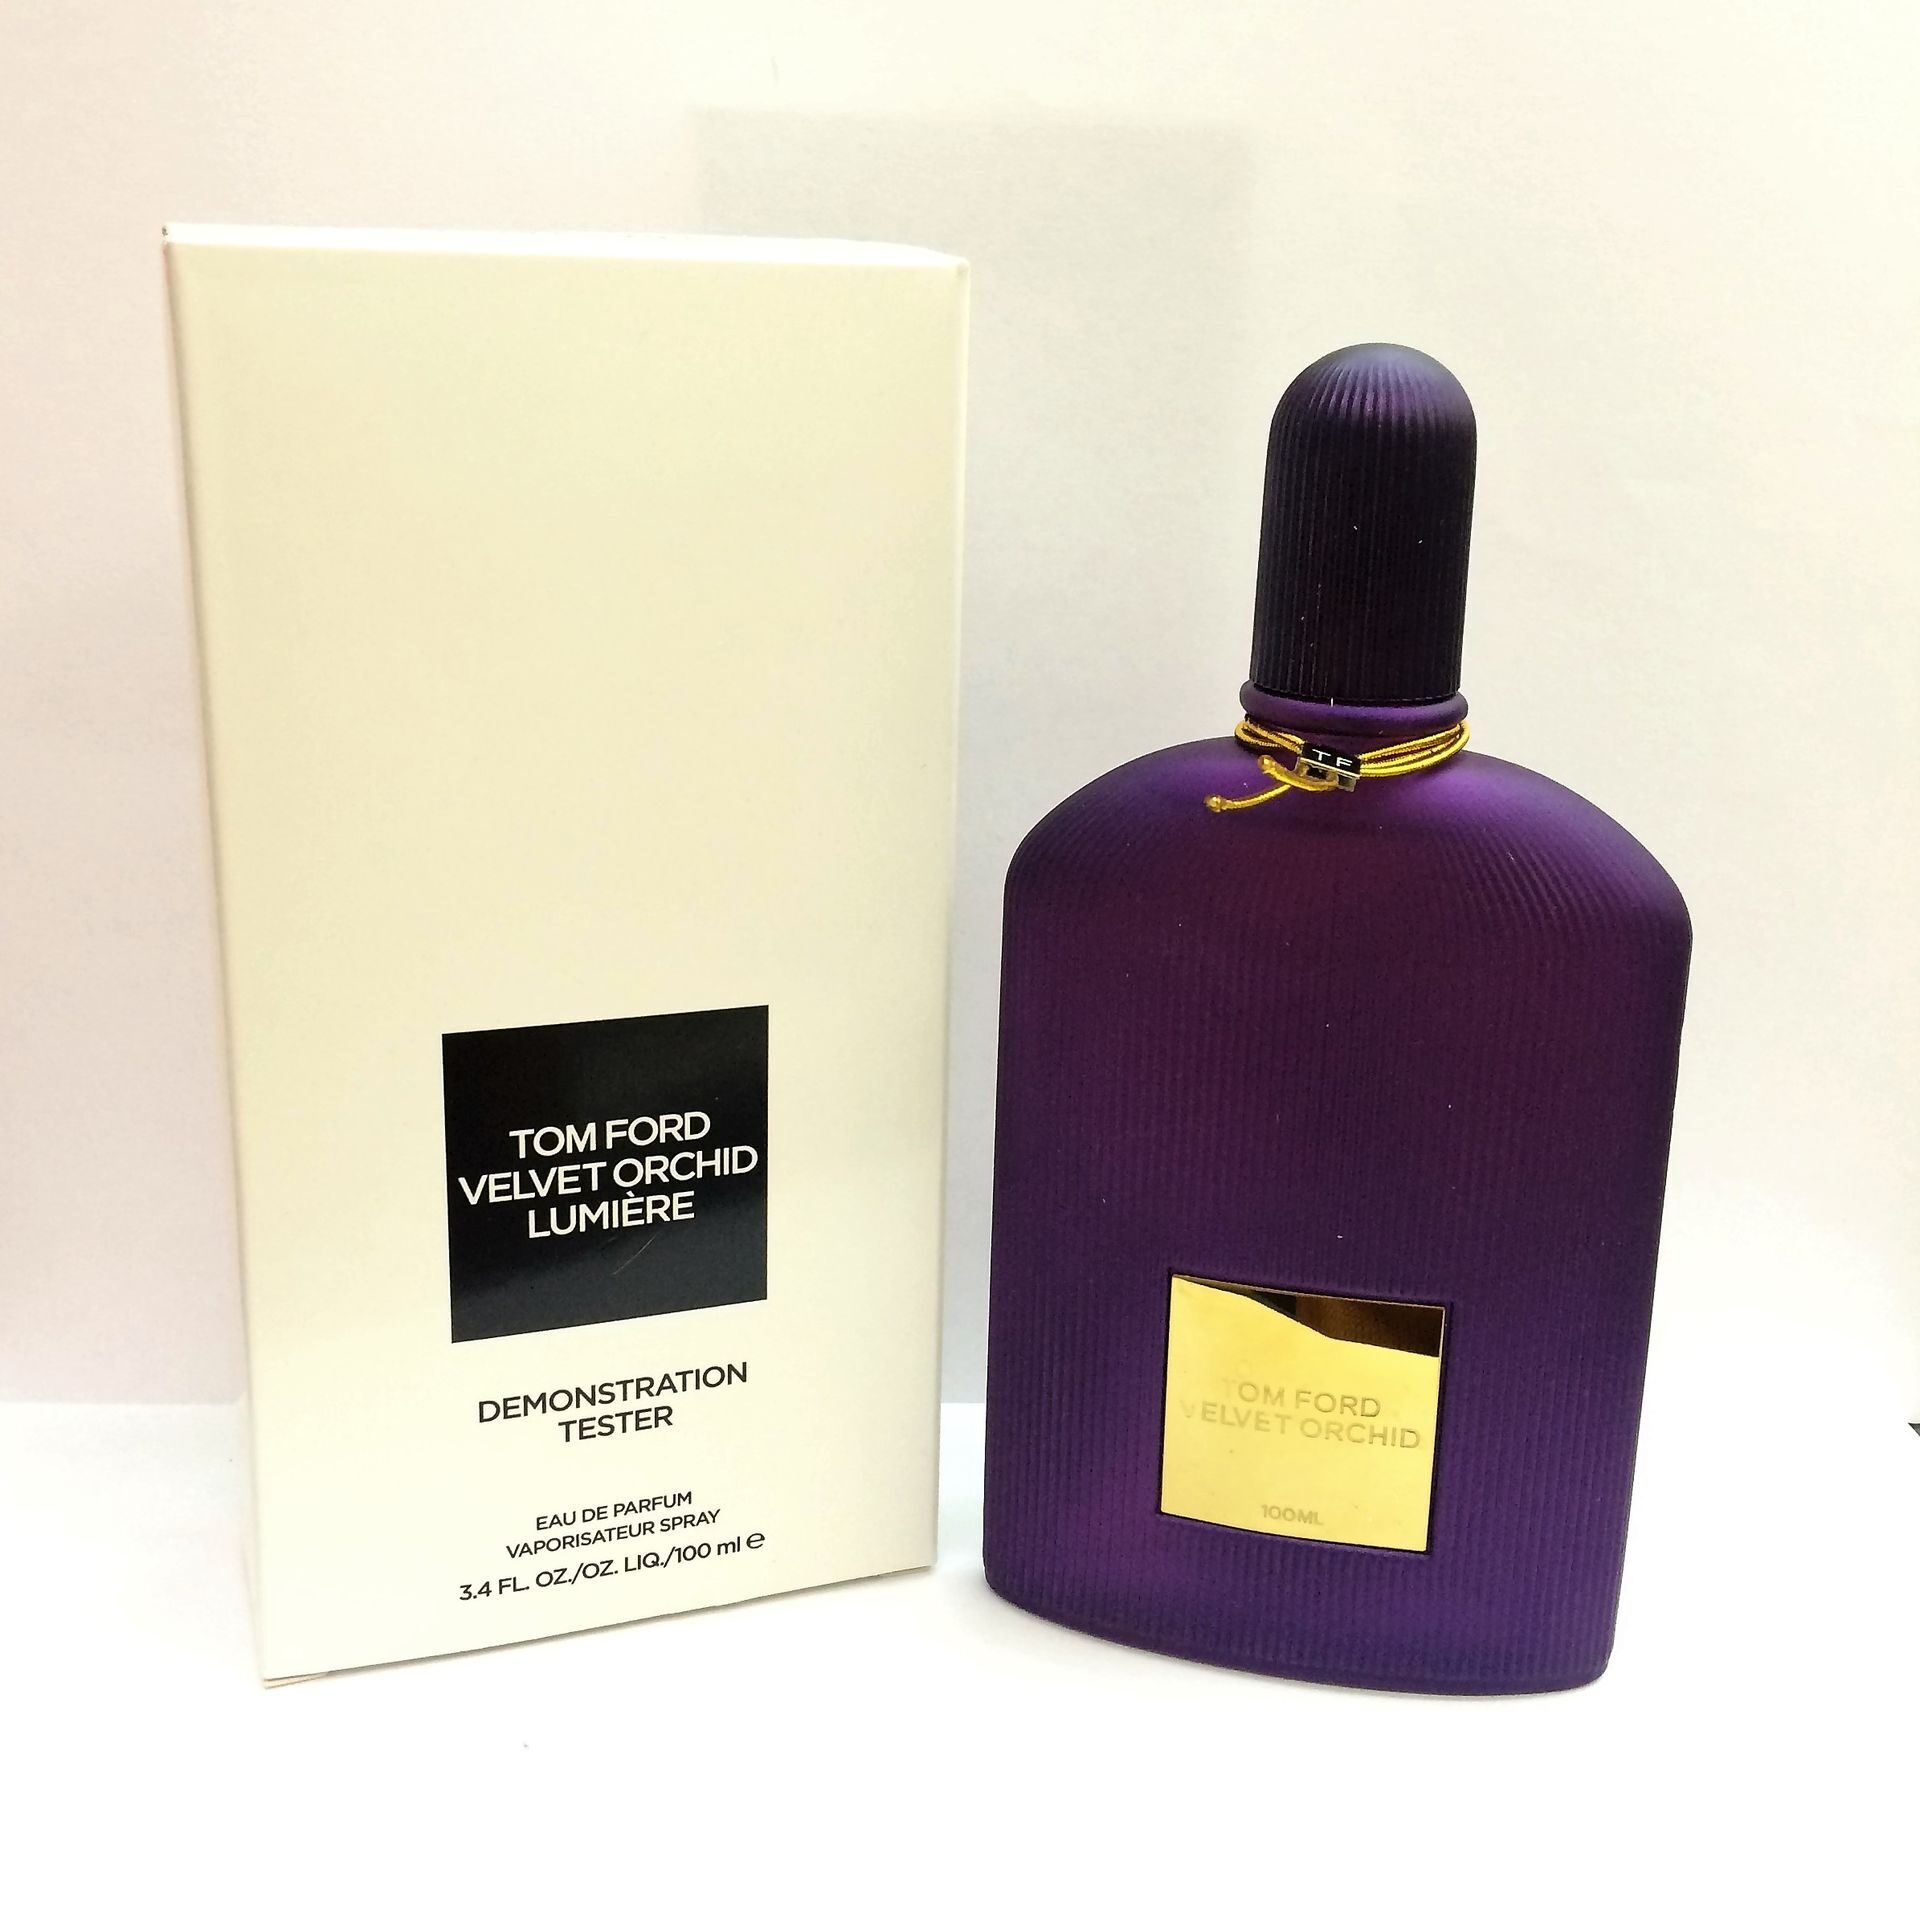 TOM FORD VELVET ORCHID FLOWER